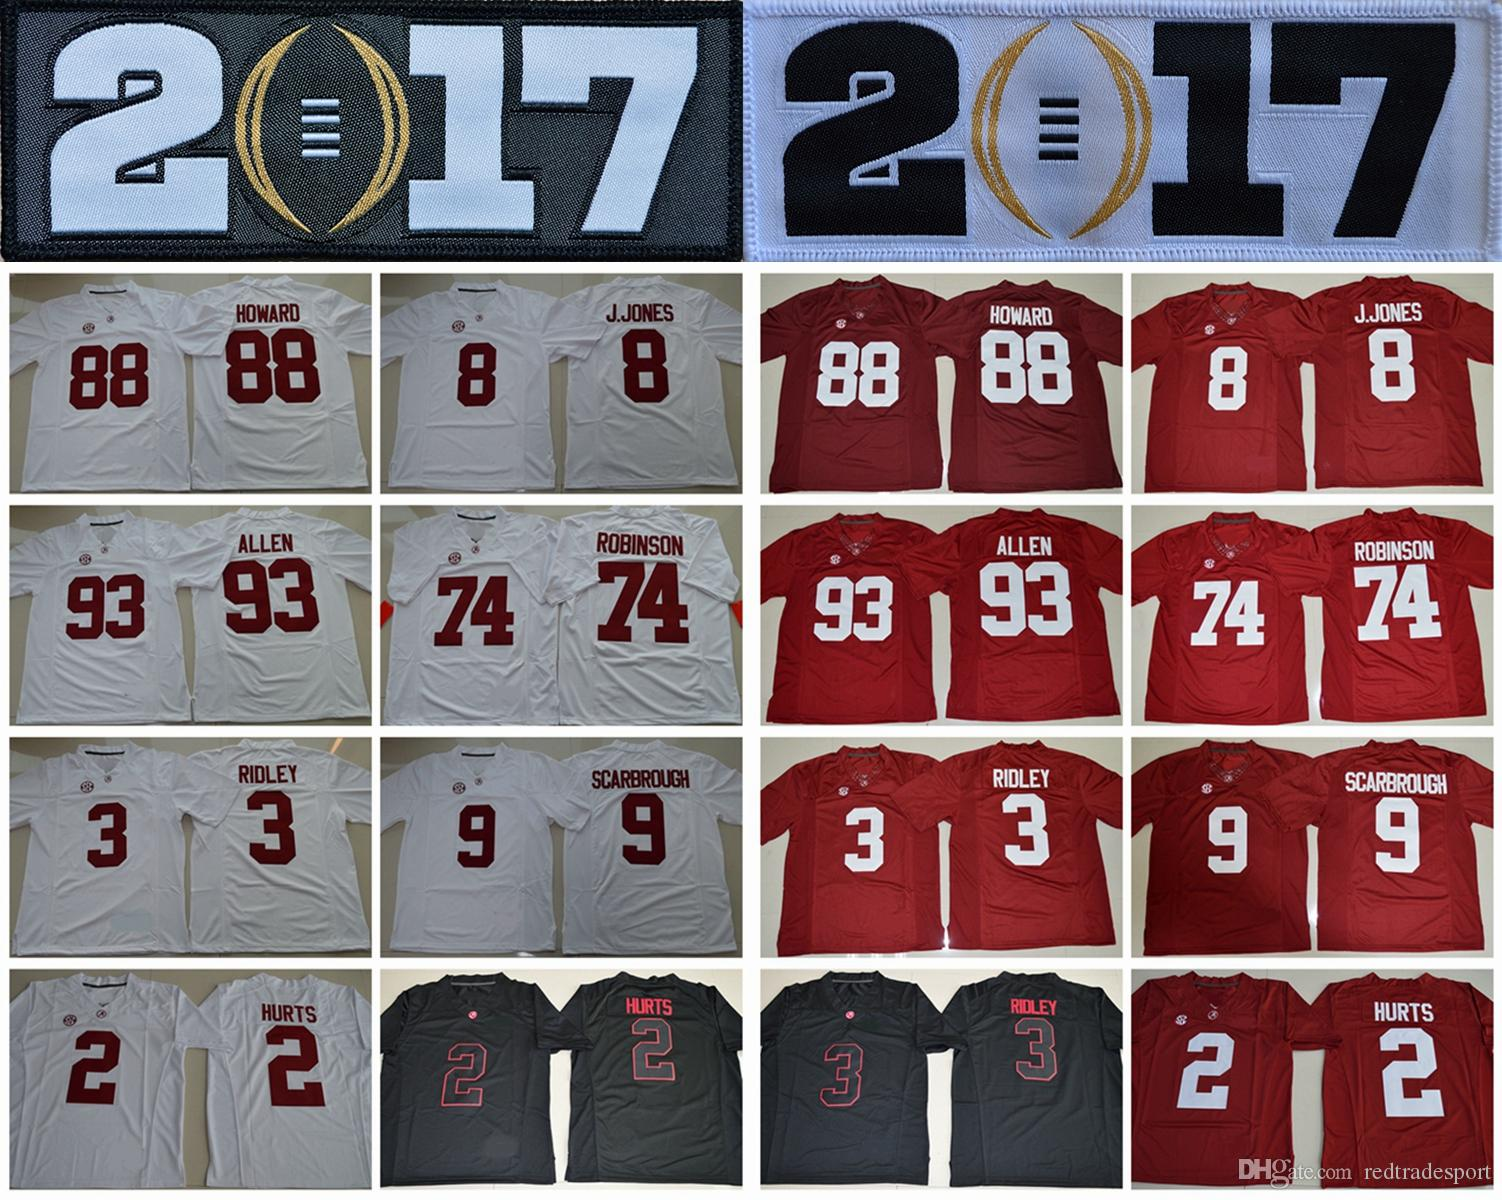 2017 Alabama Crimson Tide Collège Football Jerseys 2 Jalen Hurts 3 Calvin Ridley